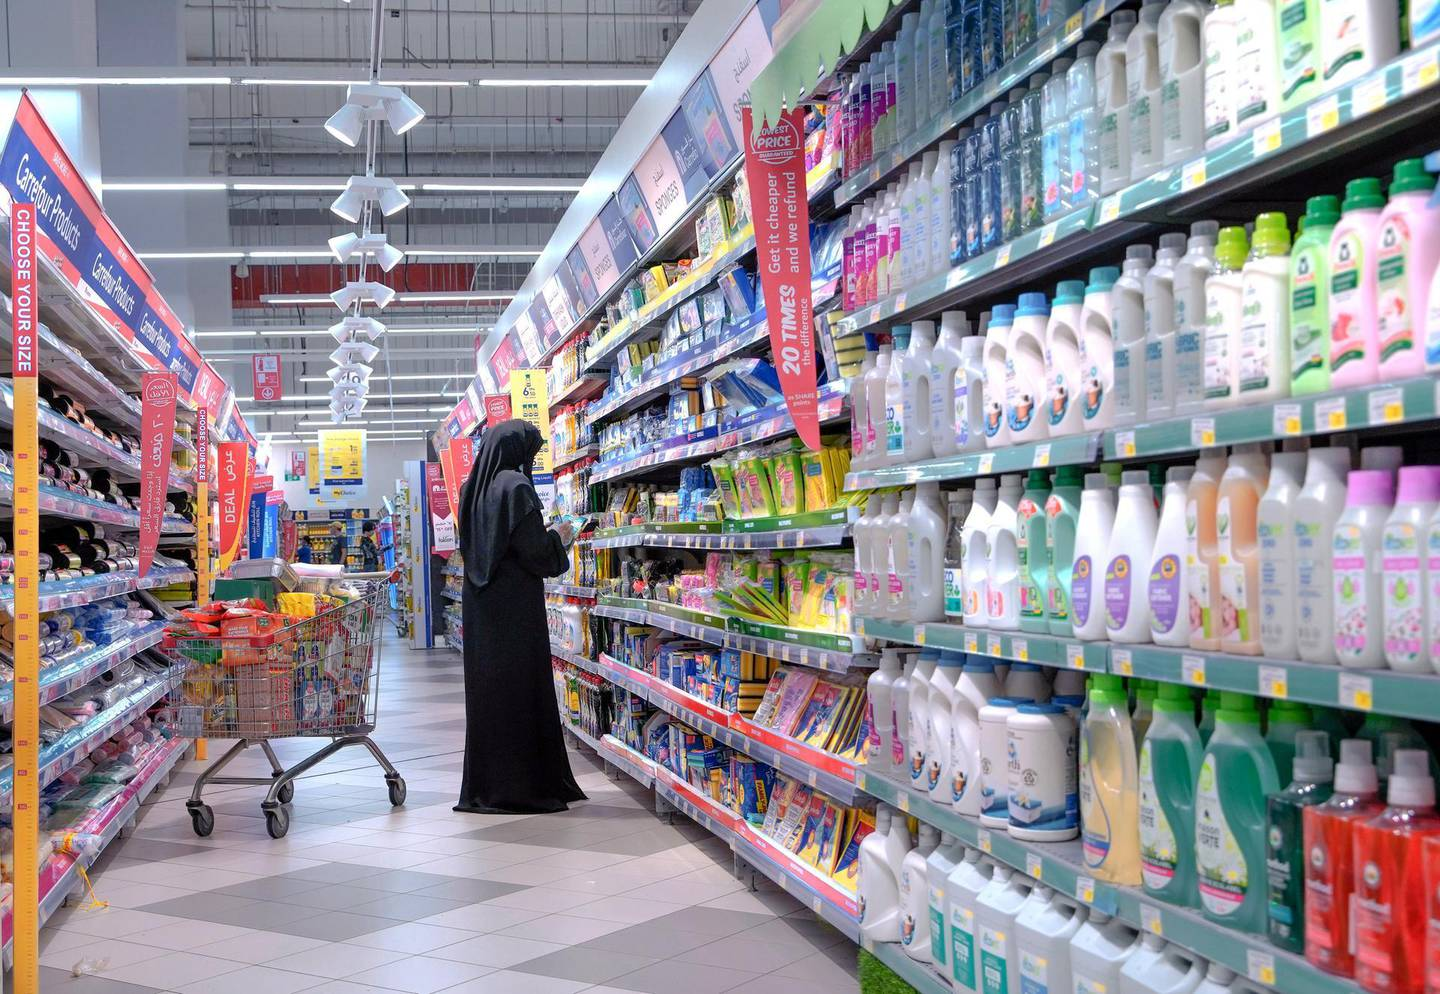 Abu Dhabi, United Arab Emirates, April 21, 2020.   Early Ramadan shoppers at Carrefour Yas Mall.  A lady searches for some disinfectants for the Coronavirus Pandemic.Victor Besa / The NationalSection:  NAFor:  Stock images